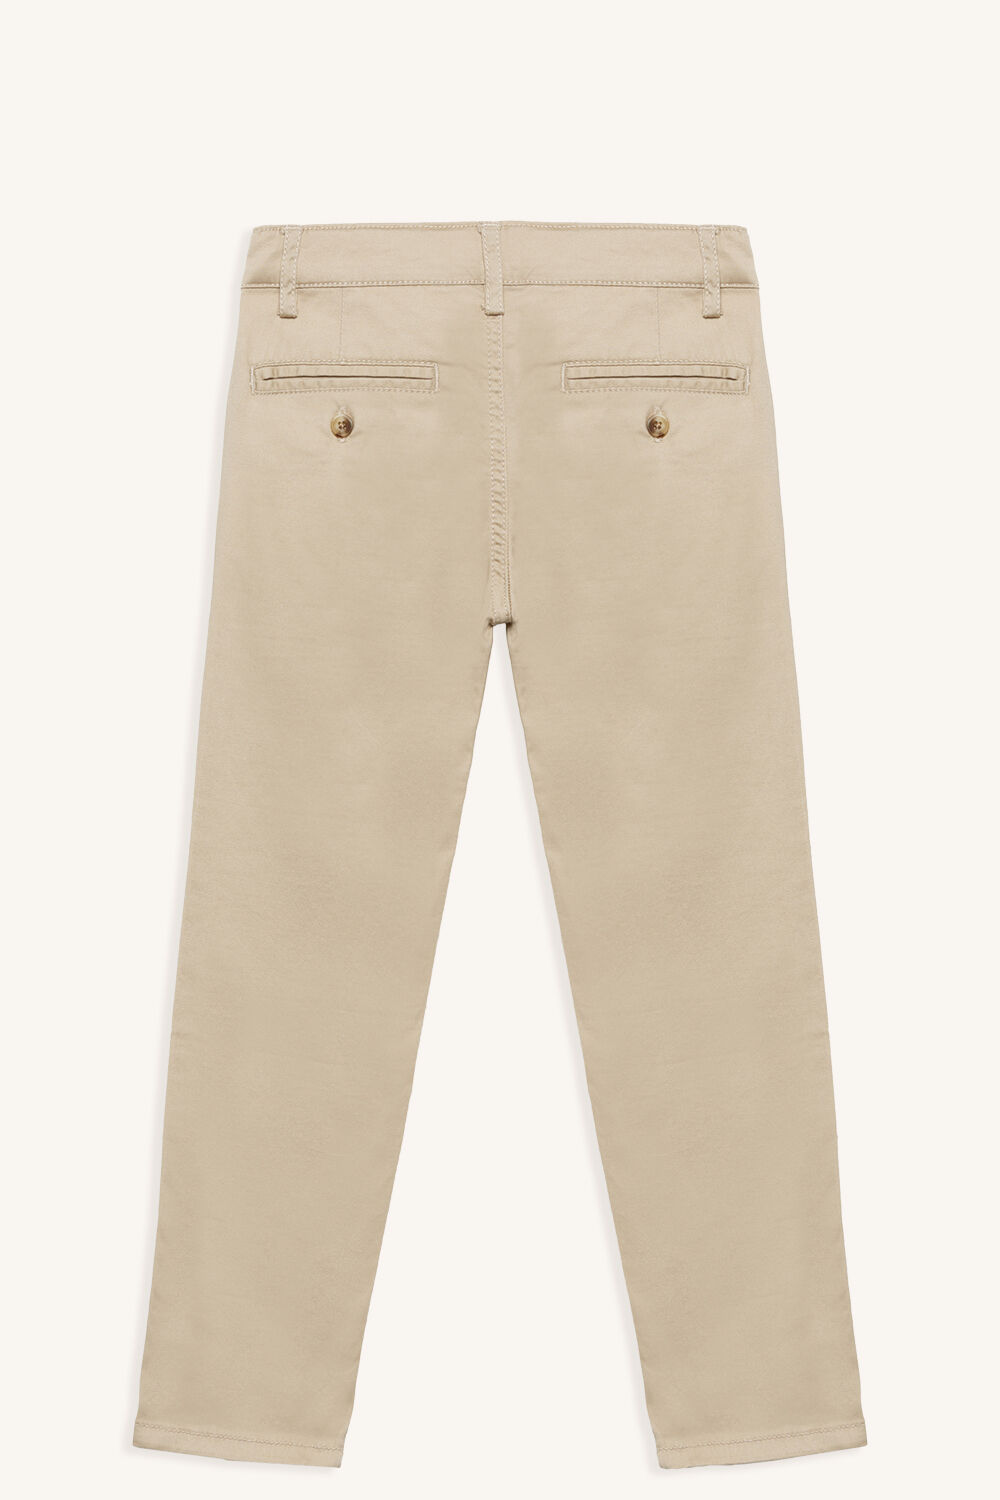 JACK CHINO PANT in colour SANDSHELL